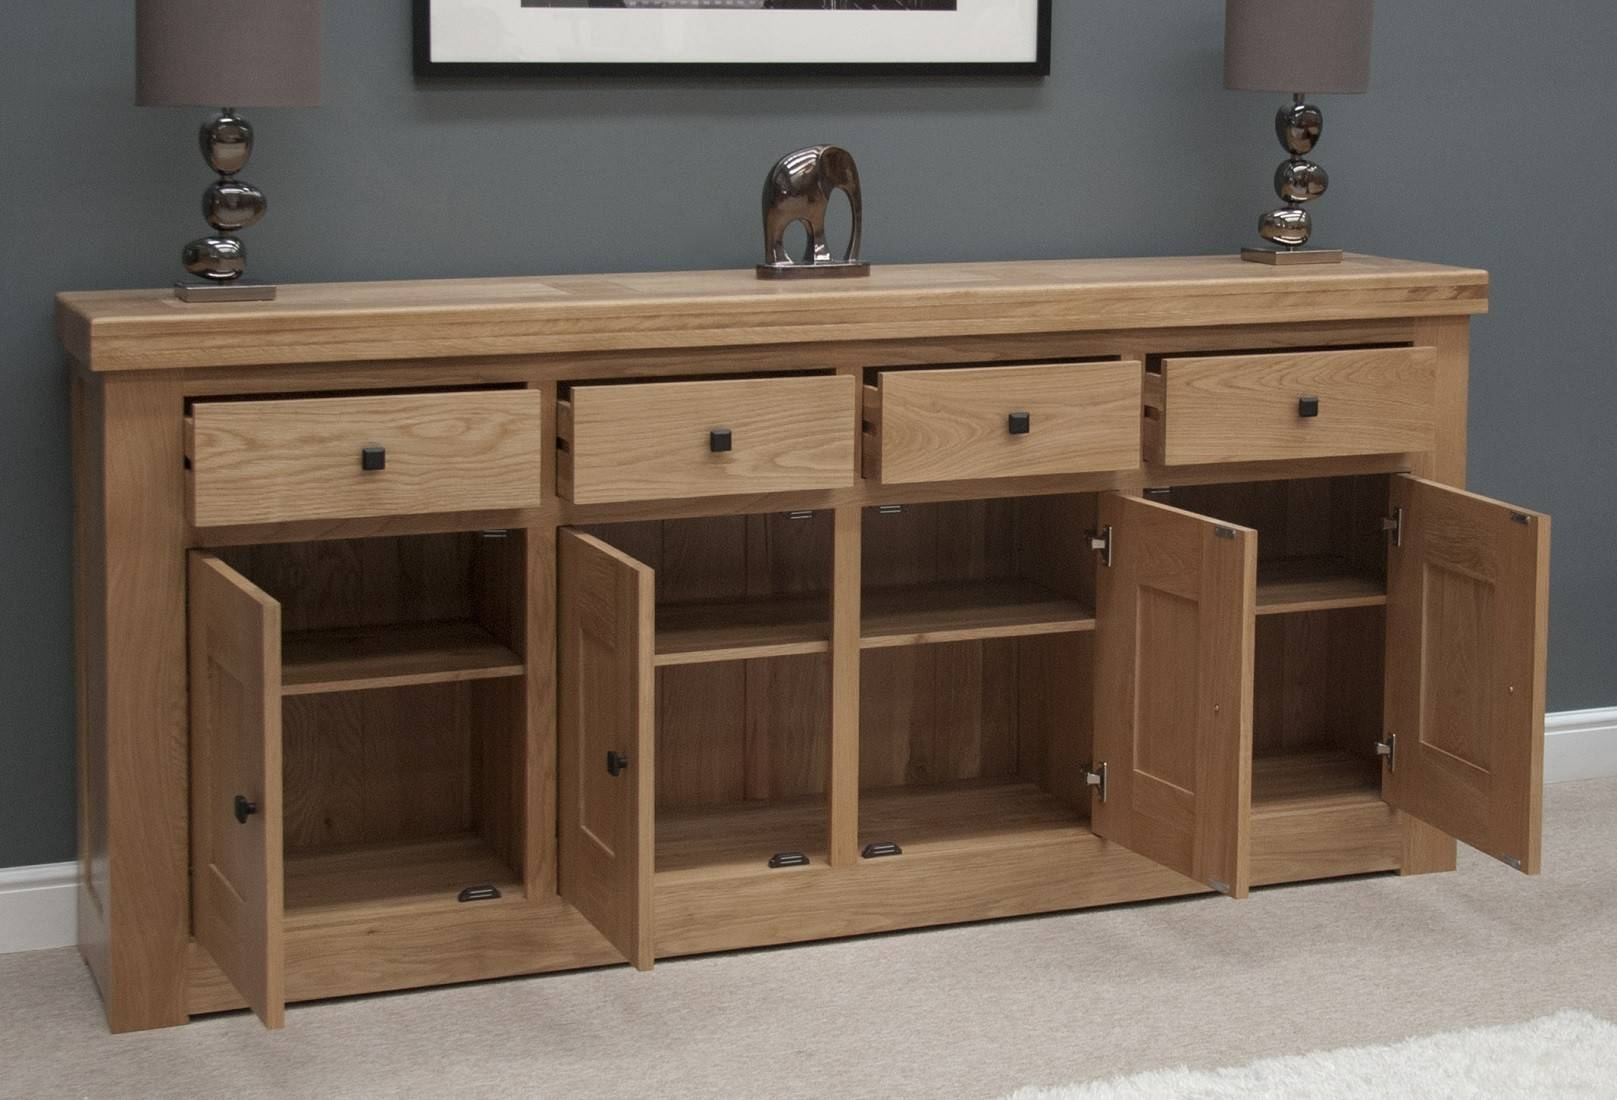 French Bordeaux Oak Extra Large 4 Door Sideboard | Oak Furniture Uk With Regard To French Sideboards (View 15 of 15)